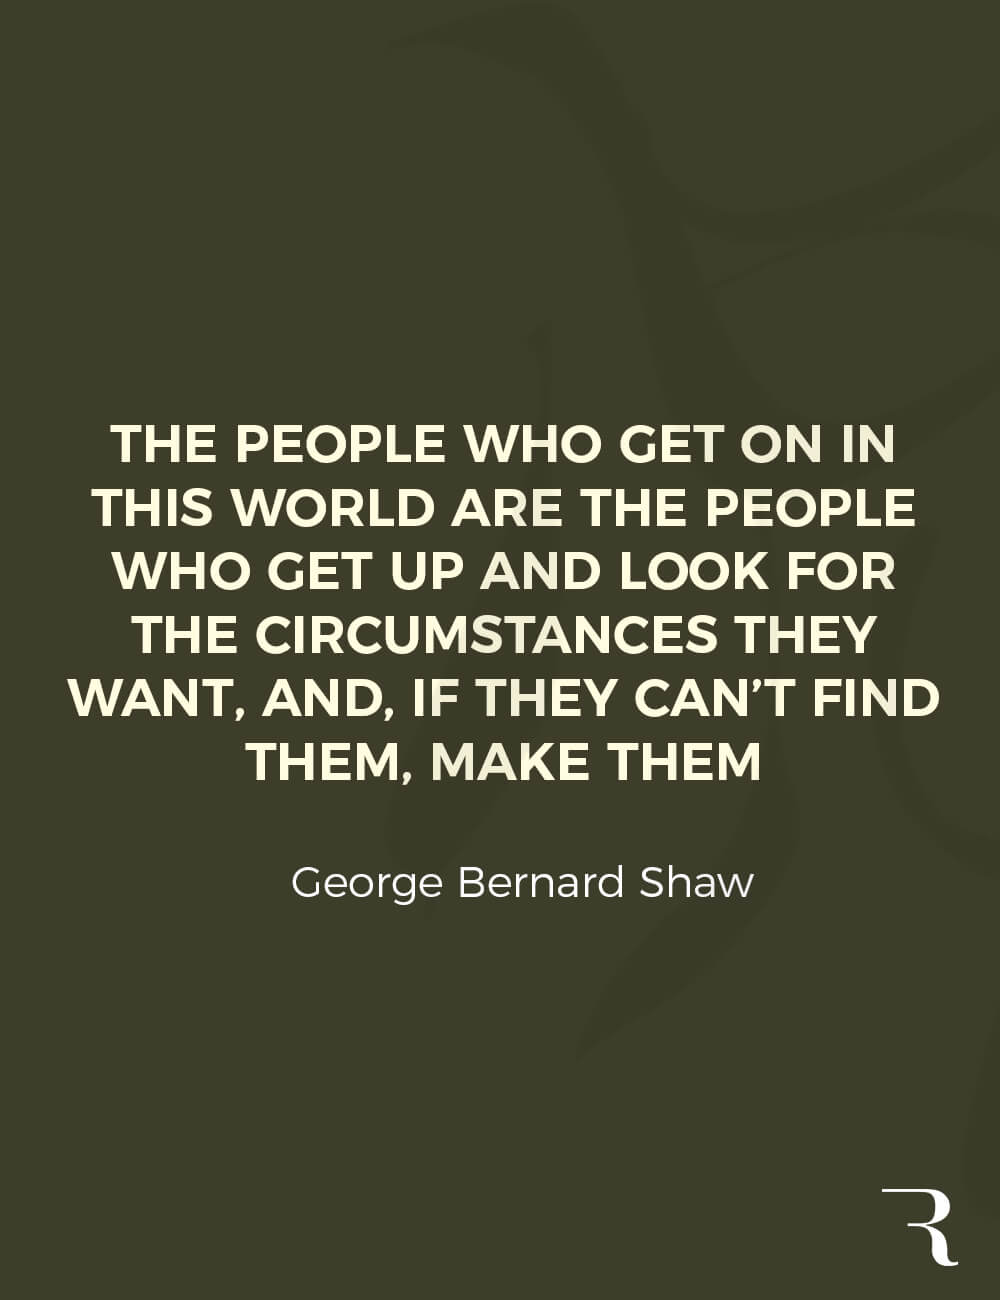 """Motivational Quotes: """"The people who get on in this world, look for the circumstances they want, or make them."""" 112 Motivational Quotes to Be a Better Entrepreneur"""